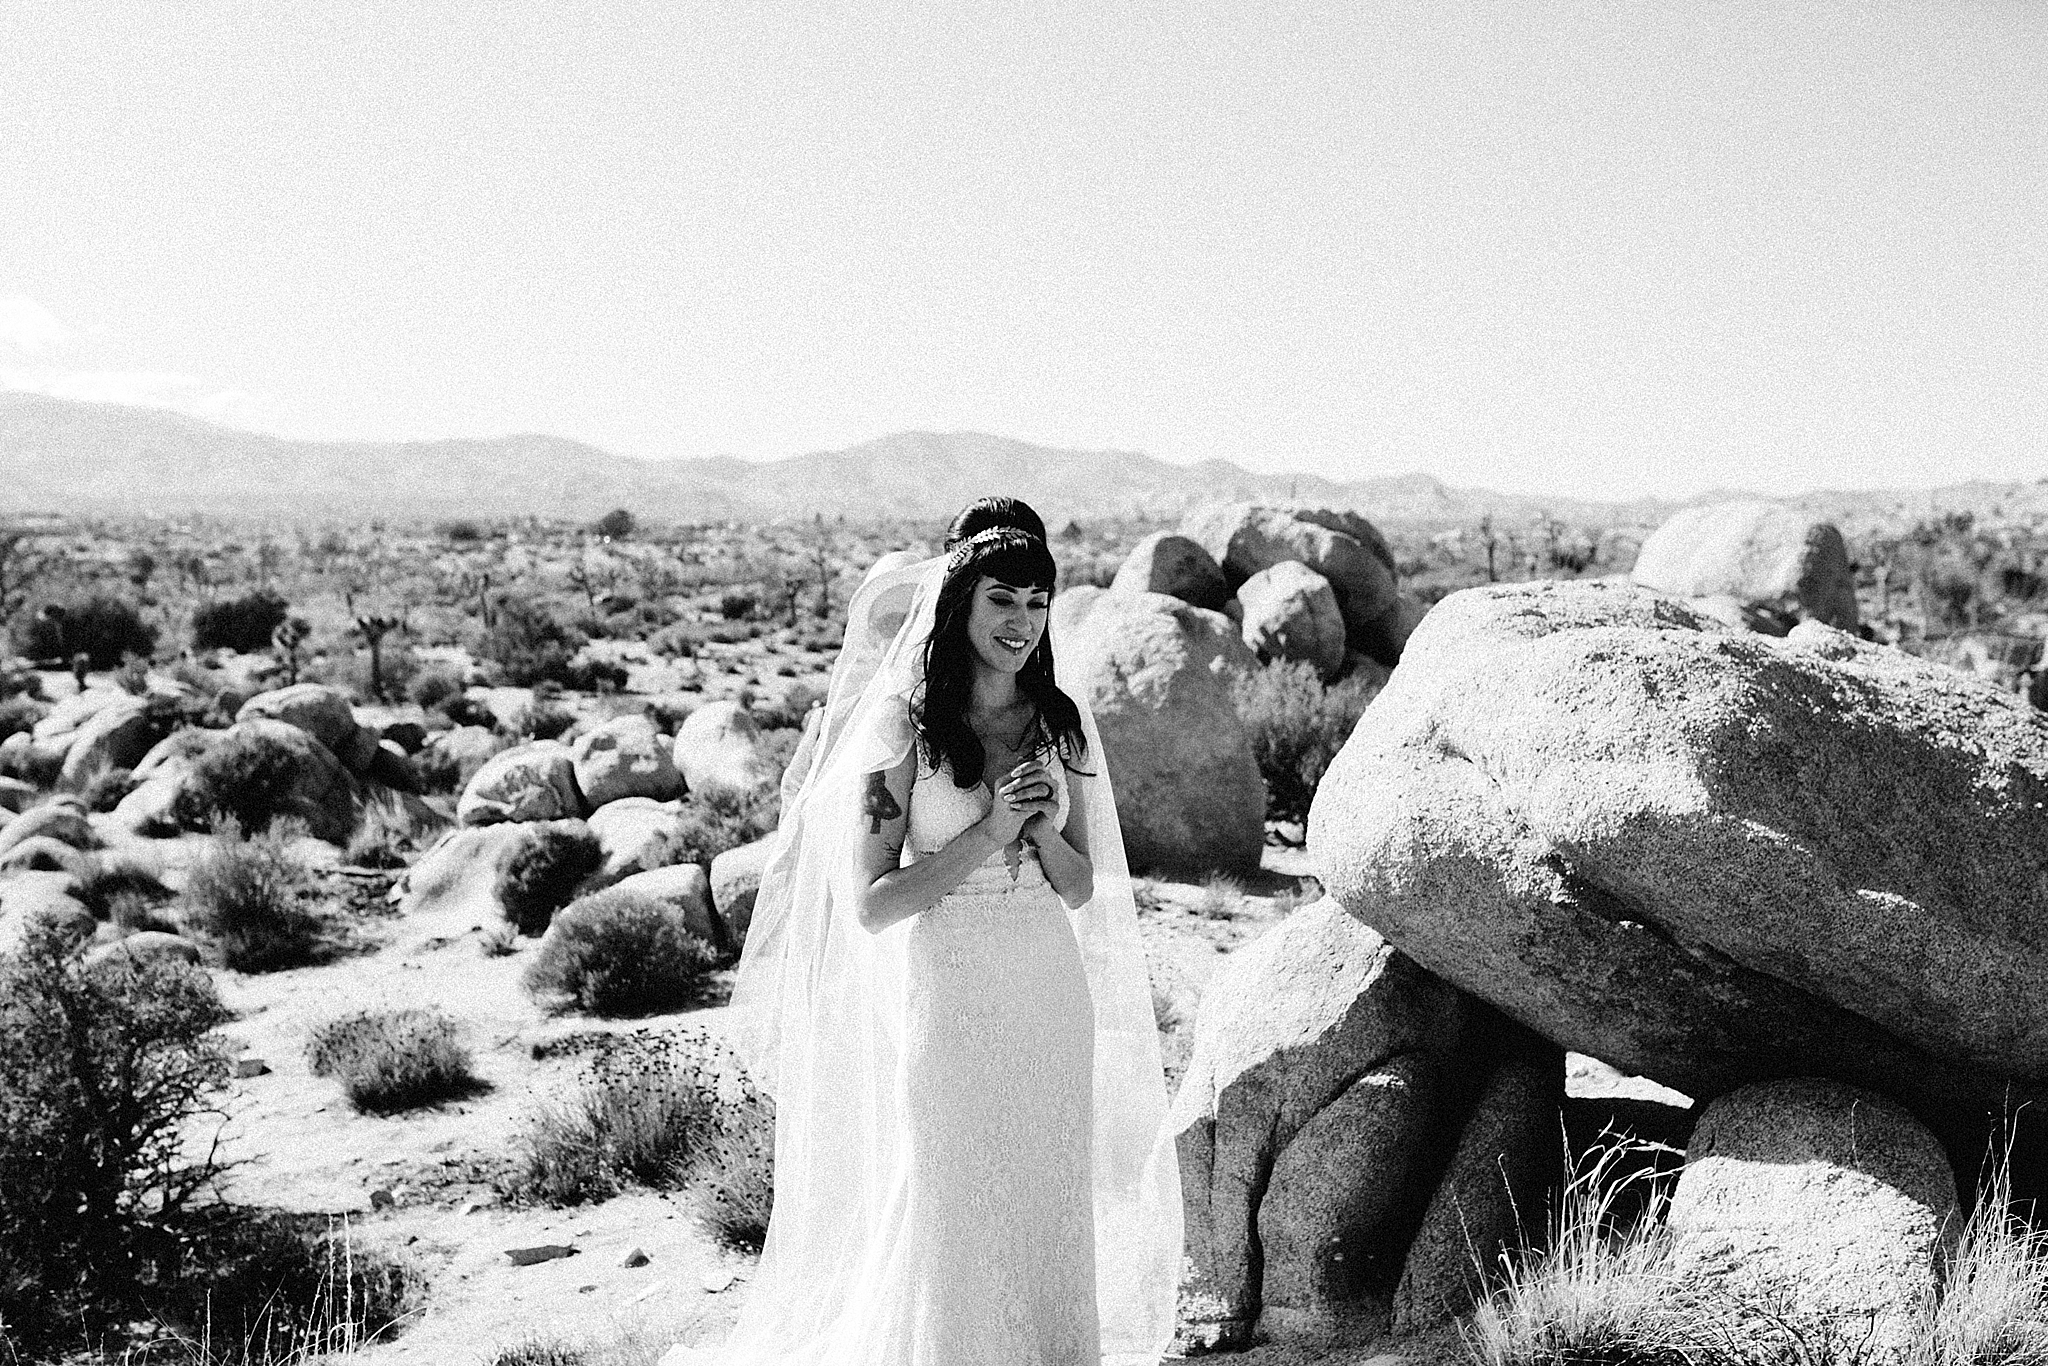 california desert wedding // joshua tree wedding photographer // Palm Springs wedding photographer